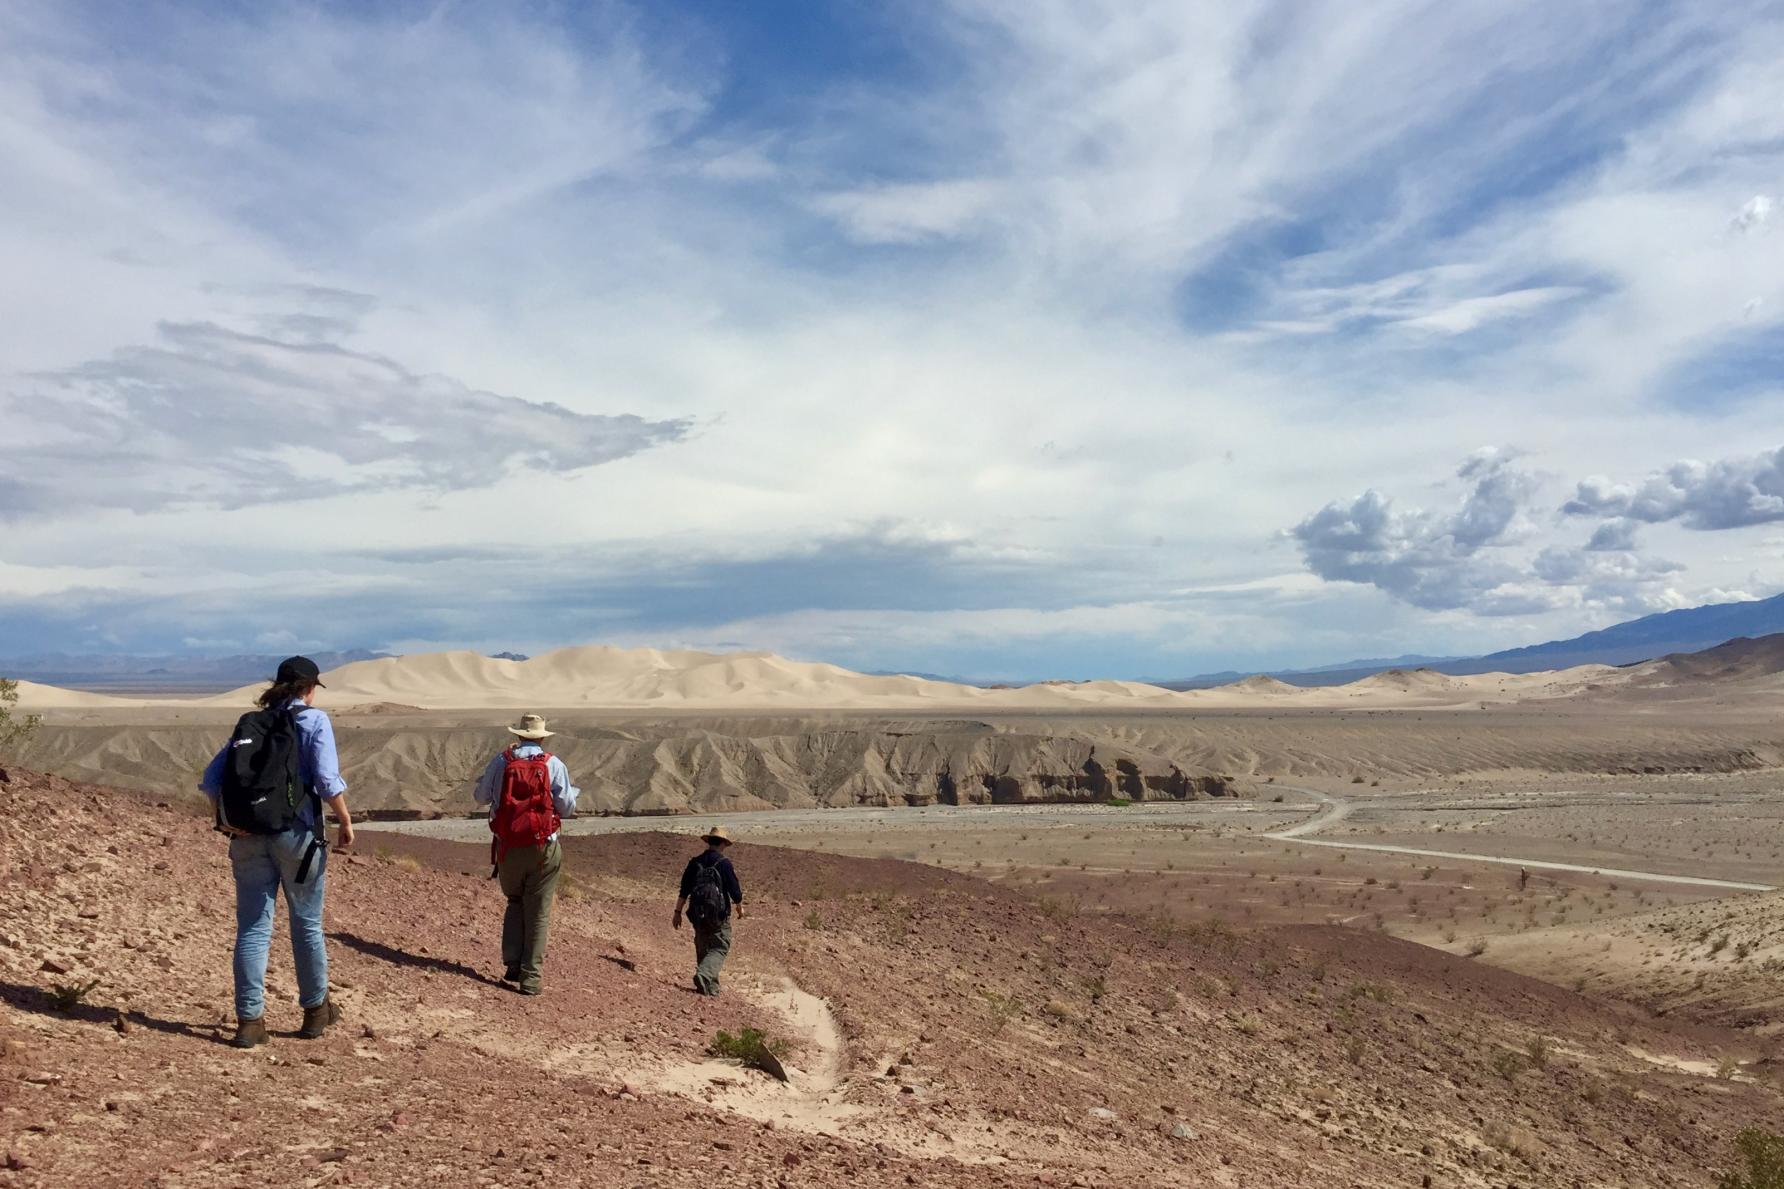 three people walk away in desert landscape under cloudy, windy sky